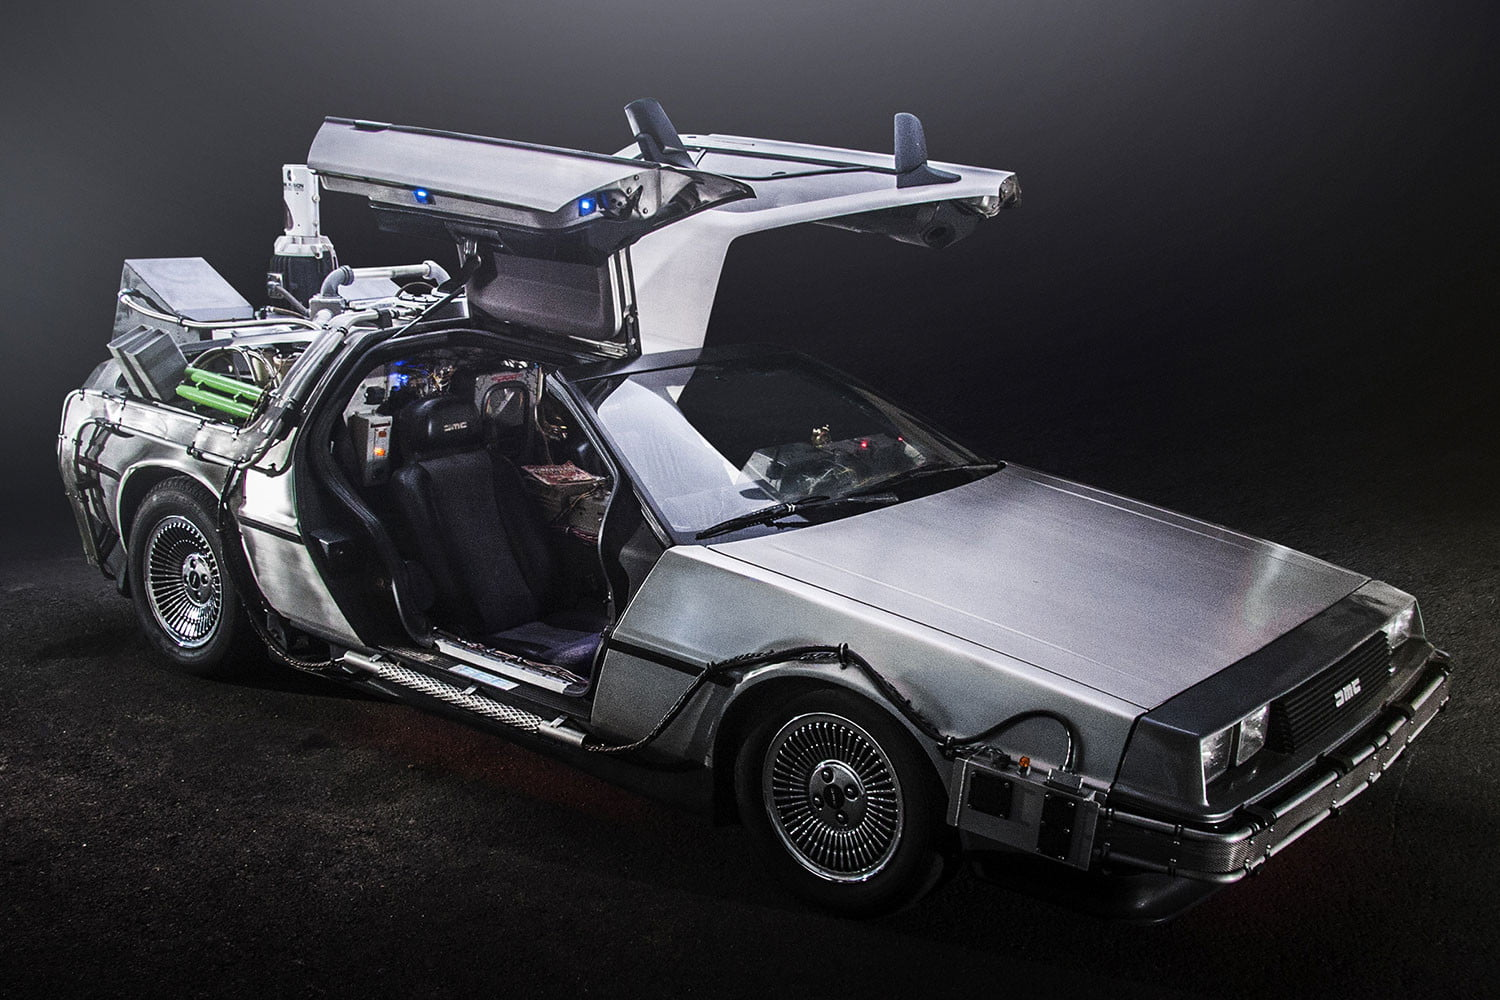 The Best Futuristic Cars From Science Fiction Movies | Pictures ...